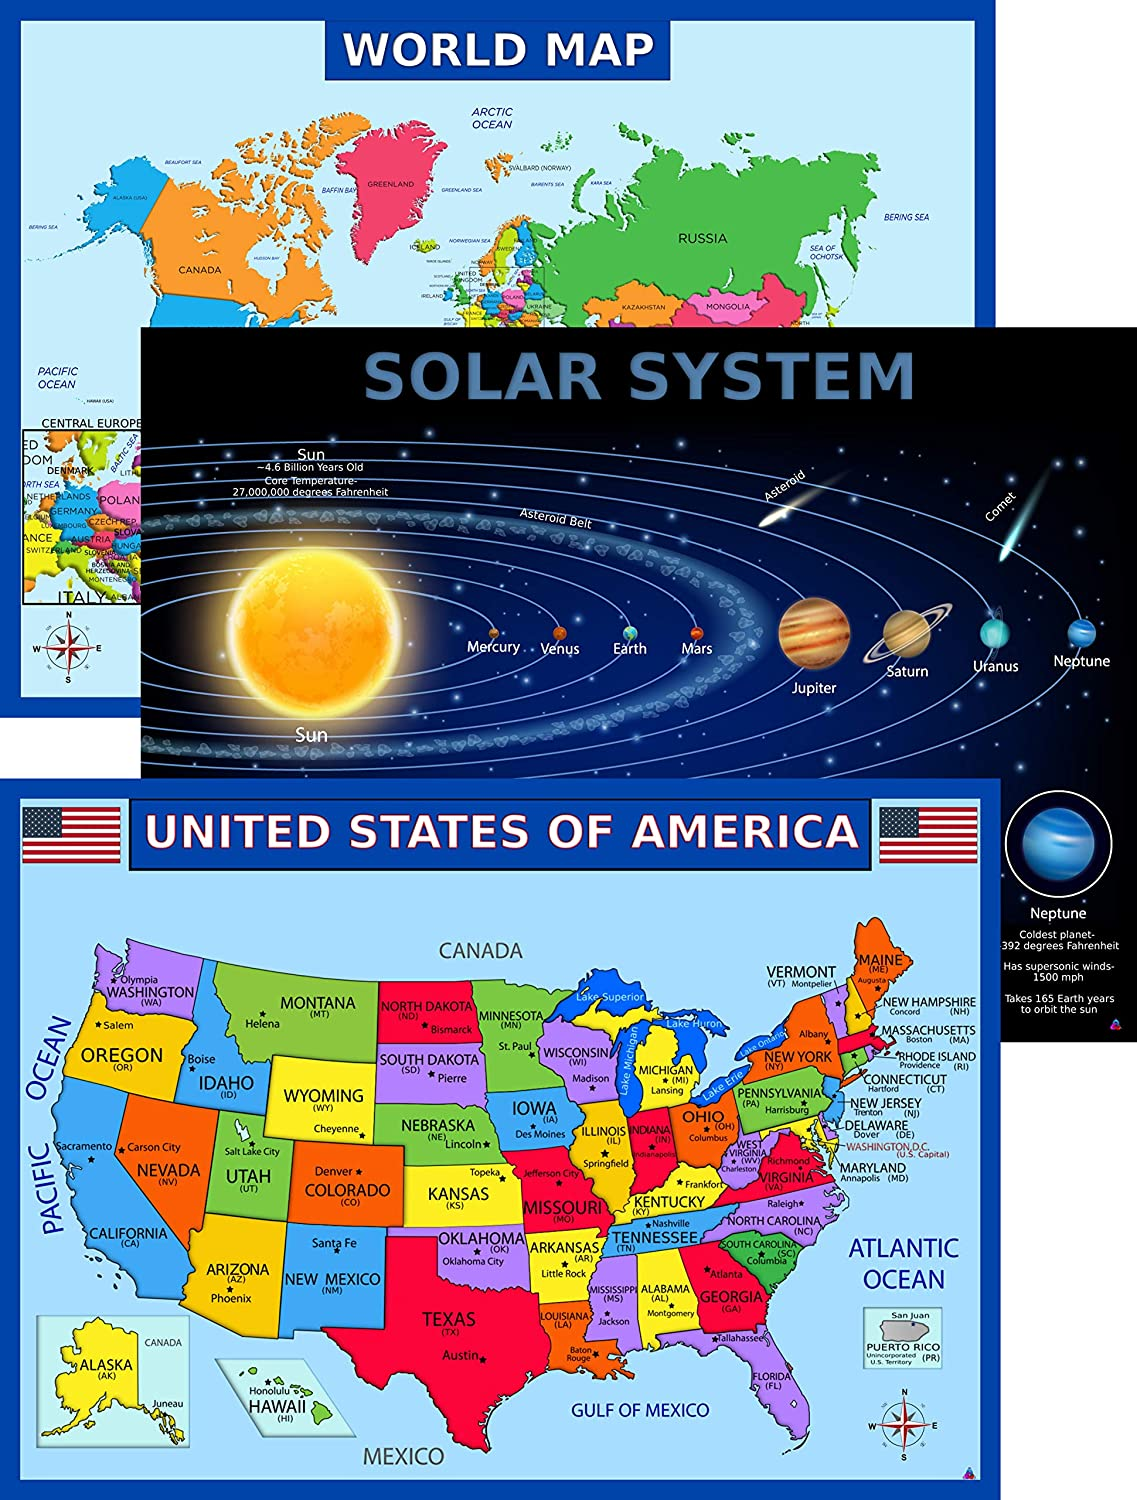 World Map Poster, United States USA Map, Solar System Posters for Kids | Laminated | Size 14x19.5 in.| Educational Posters for Elementary Classroom Decorations, Teacher Supplies (Maps and Solar)